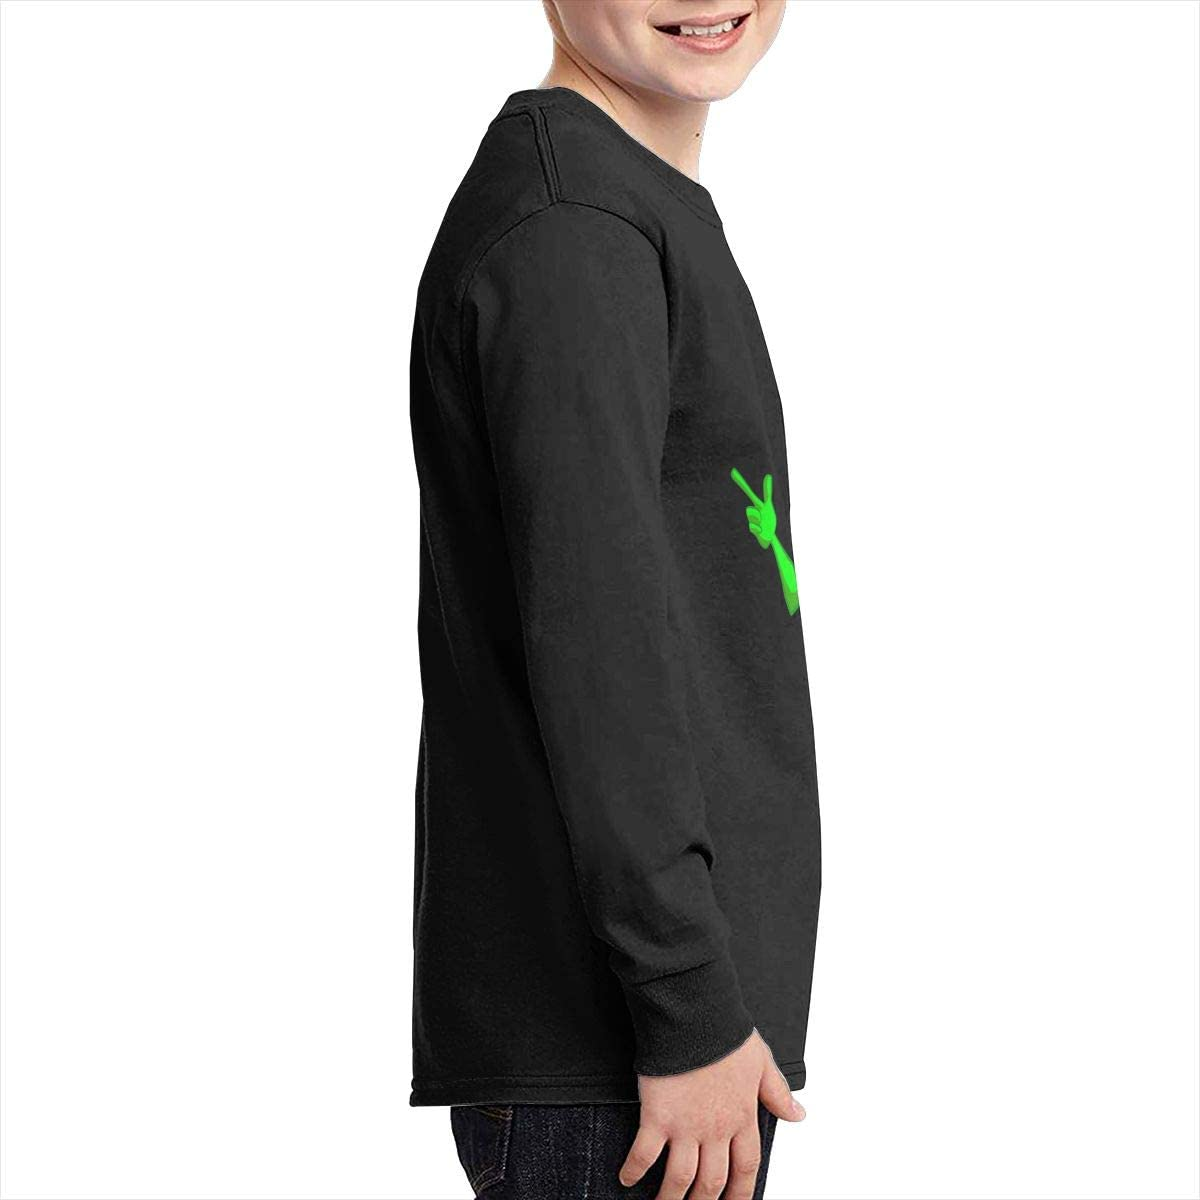 2vf78wew11 Ghostbusters Slimer Cotton Crew Neck Long Sleeve T-Shirt for Boys Girls